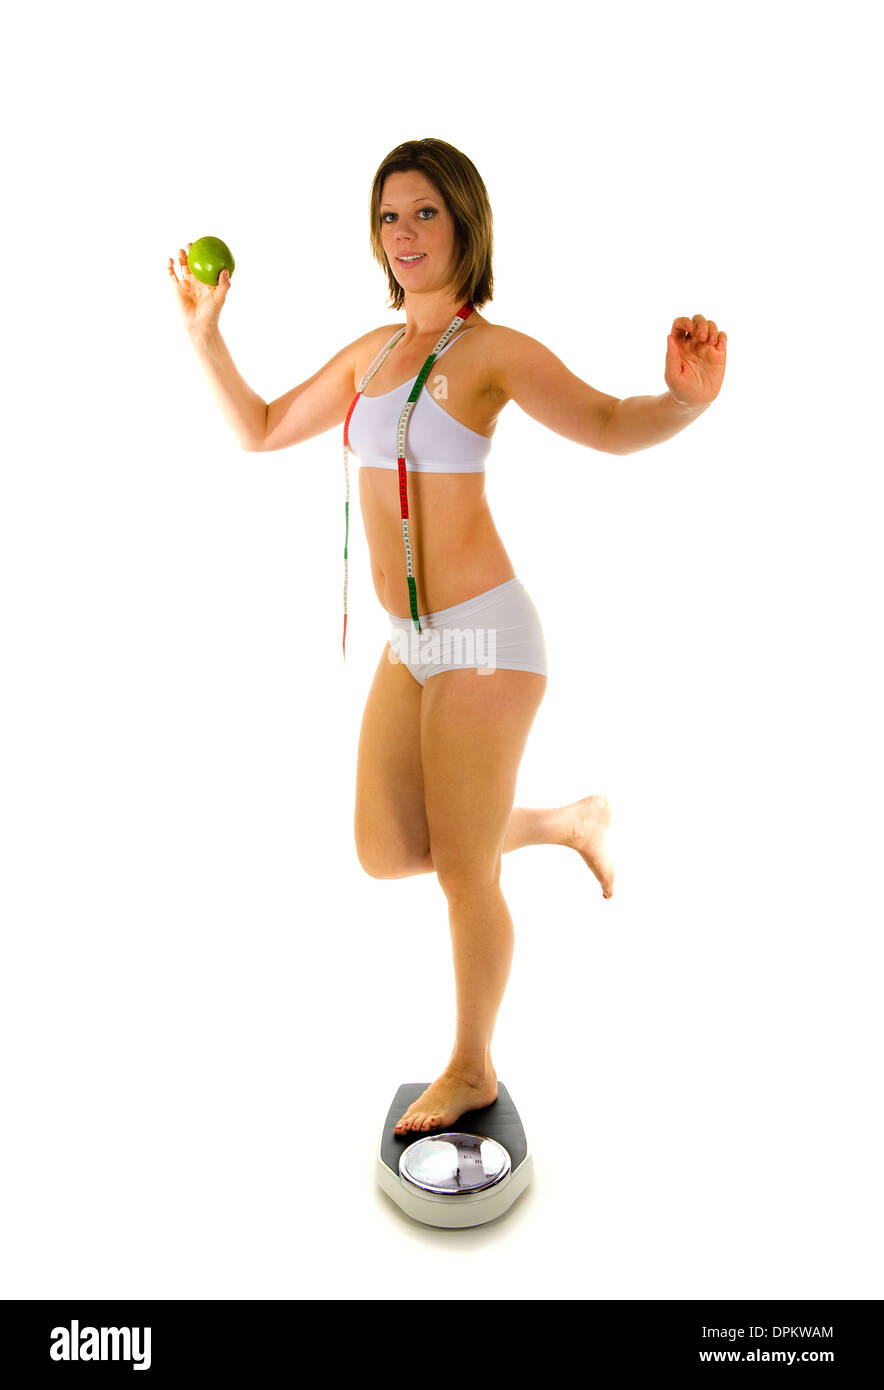 A woman standing on a weight scale with an apple - Stock Image